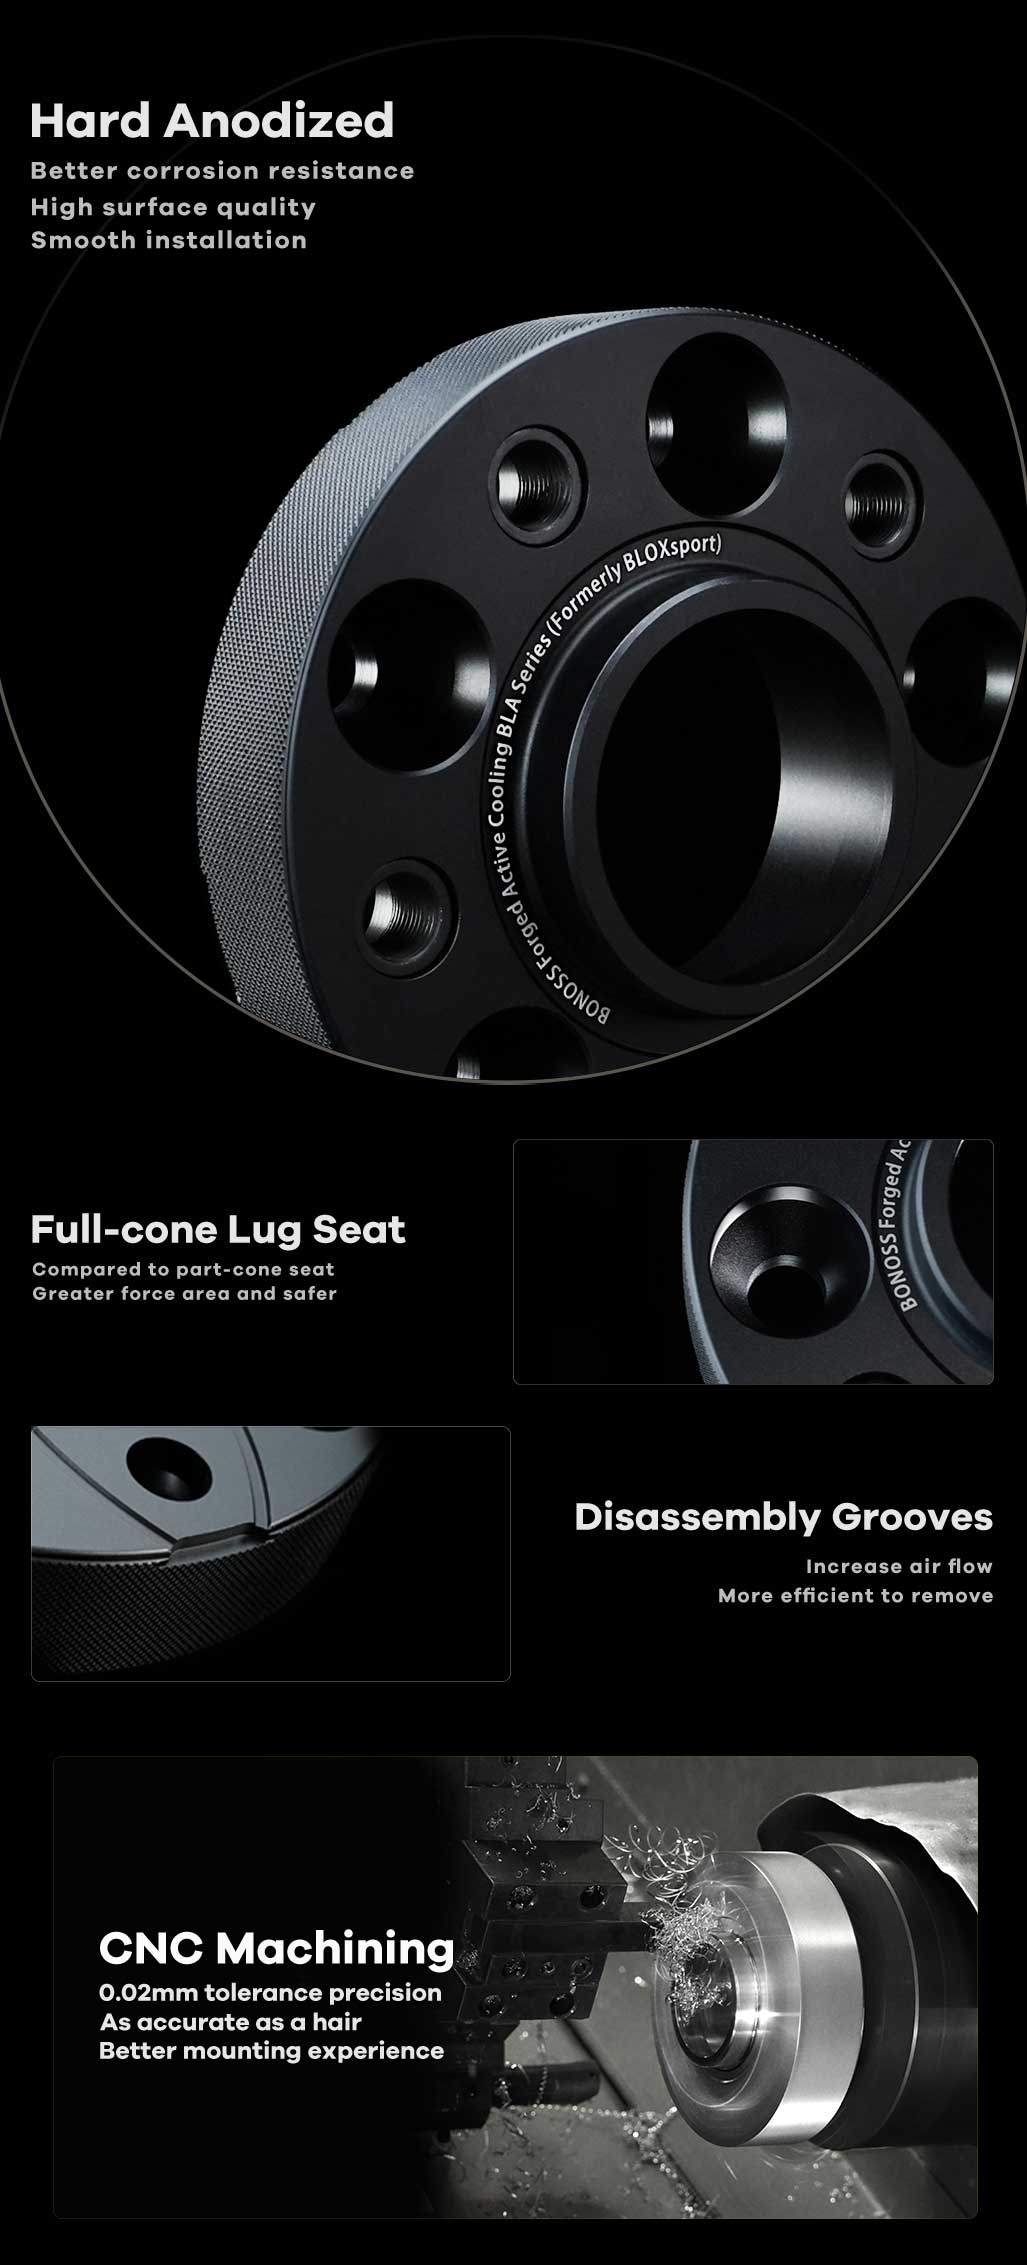 BONOSS-forged-active-cooling-5-Lug-PCD5x120-wheel-spacers-(custom-wheel-spacers)-aston-martin-by-lulu-3